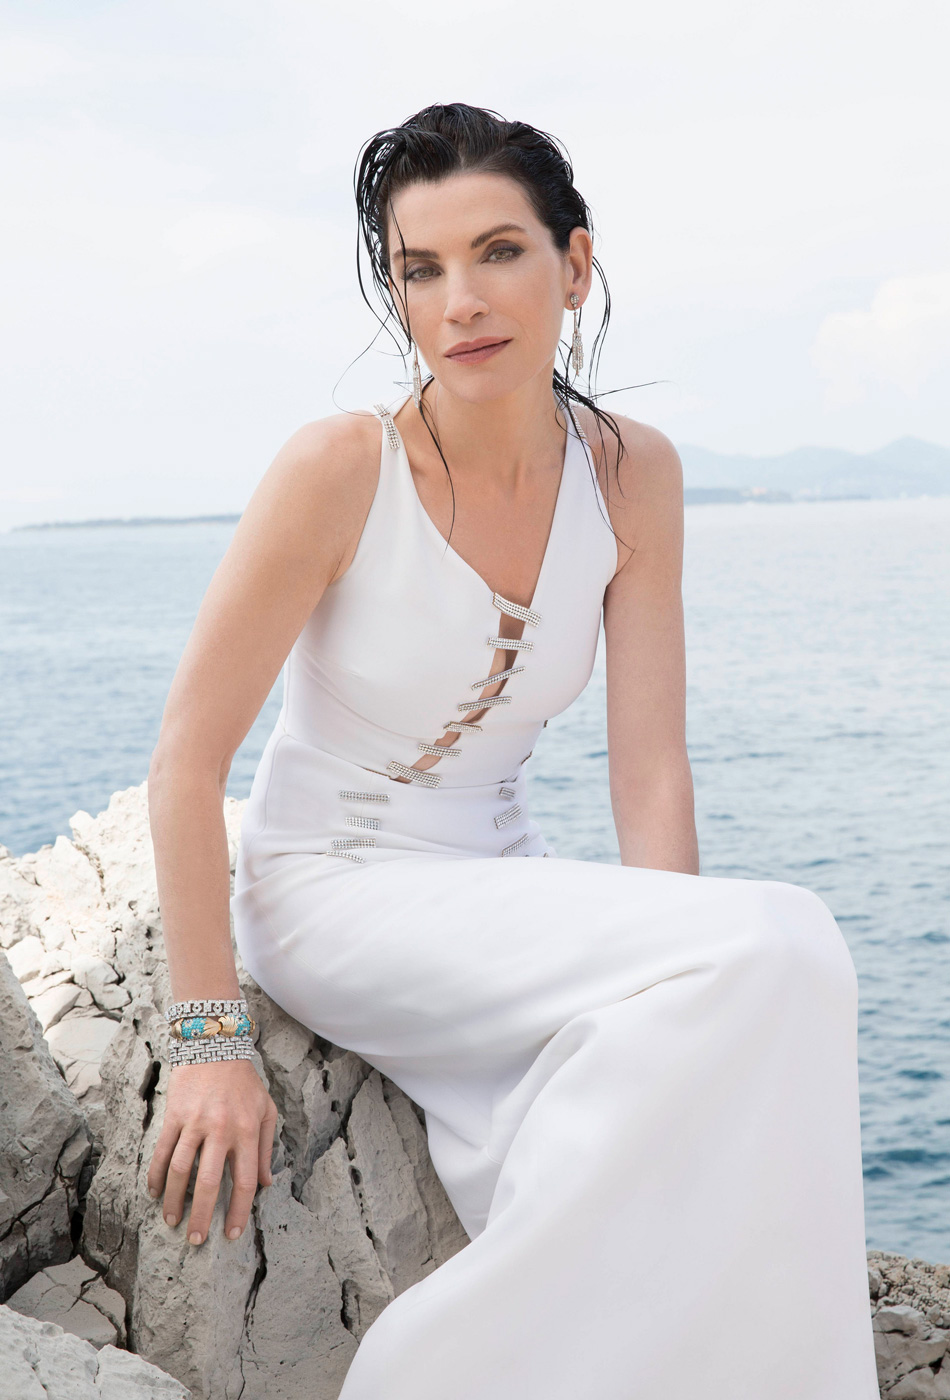 Julianna Margulies is absolutely marvelous. Scroll to see more stunning photos!